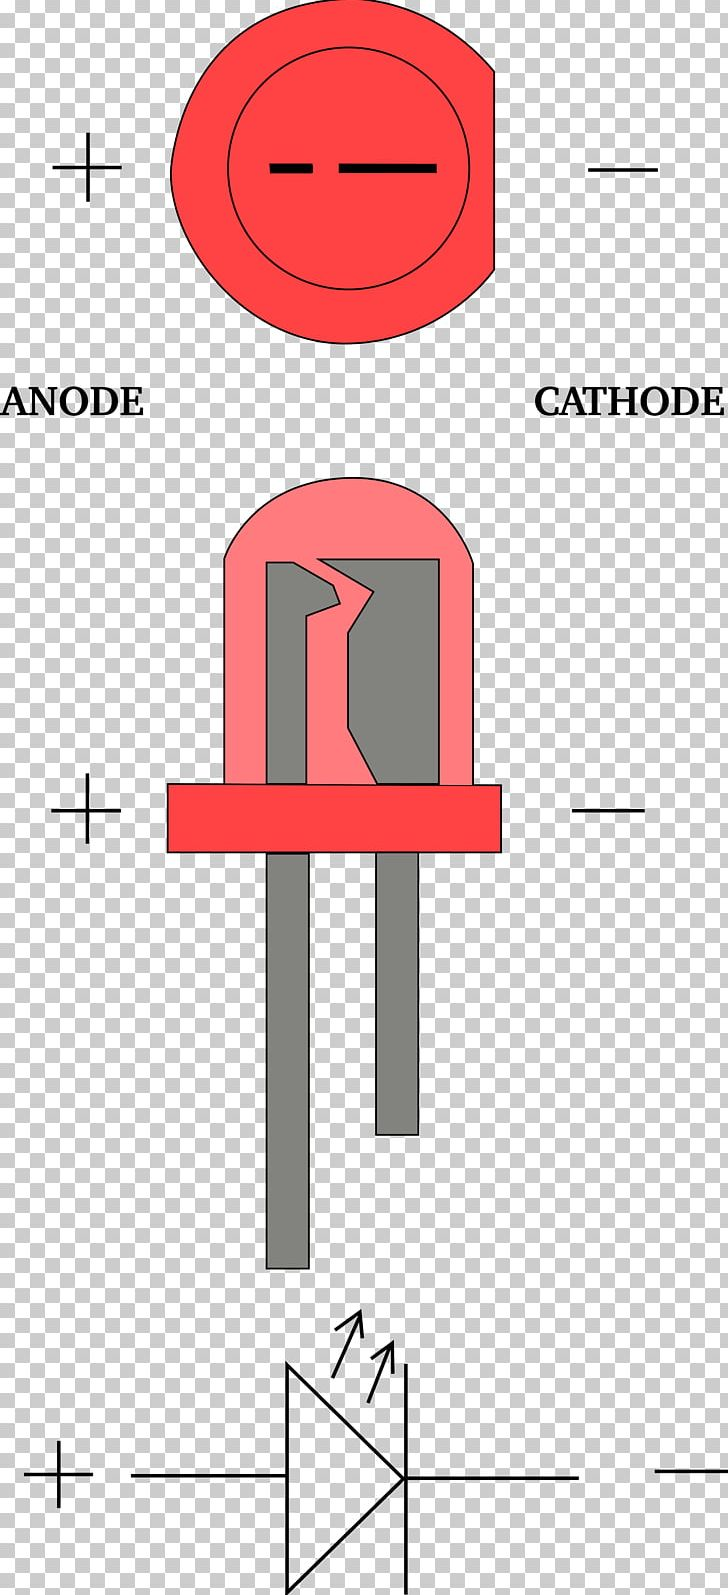 hight resolution of light emitting diode led circuit electronics png clipart angle anode arduino cathode diagram free png download